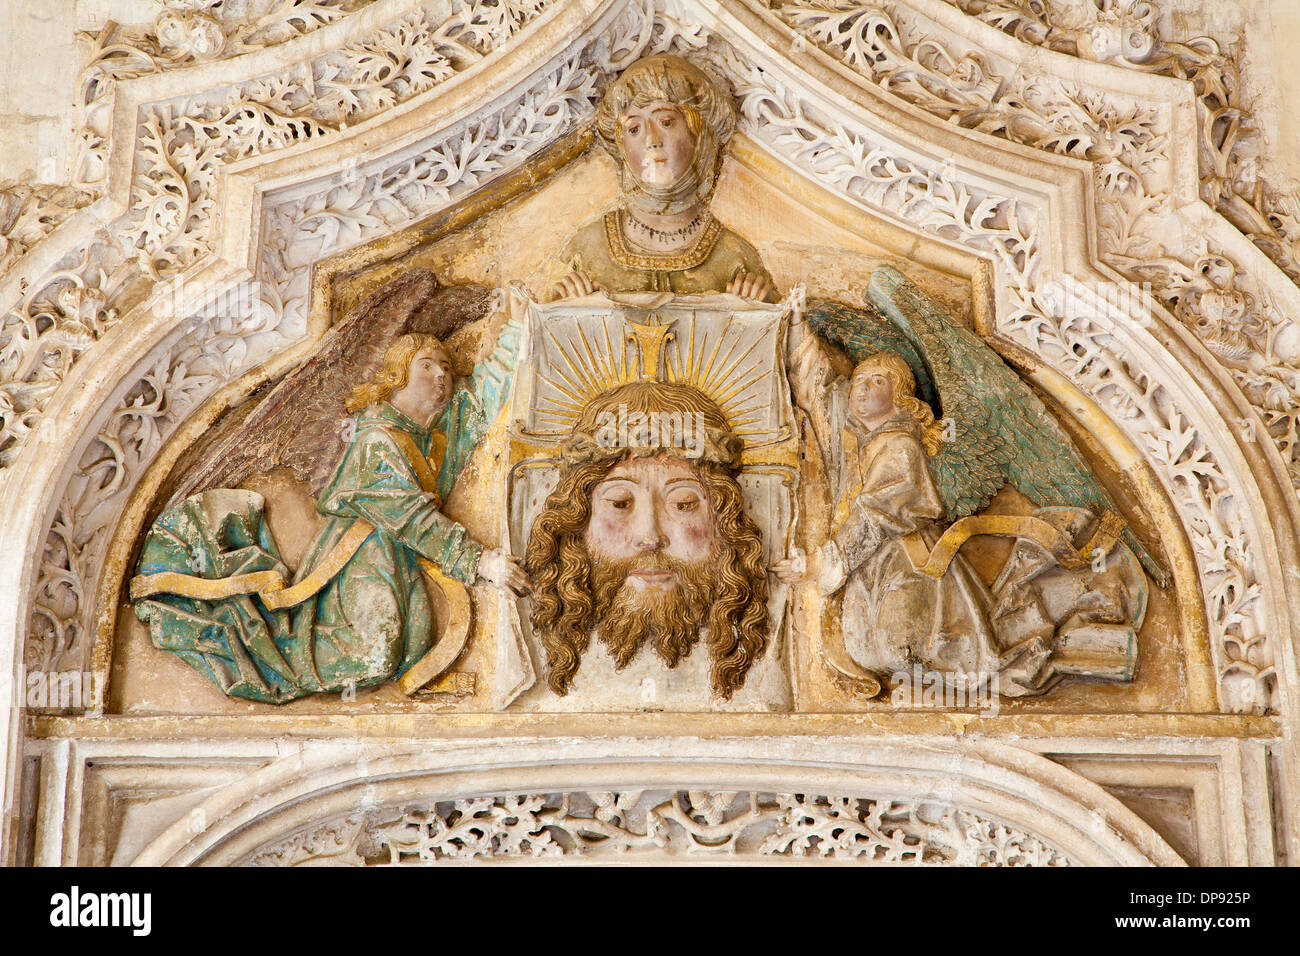 TOLEDO - MARCH 8: Detail from portal of Gothic atrium of Monasterio San Juan de los Reyes or Monastery of Saint John of the King - Stock Image